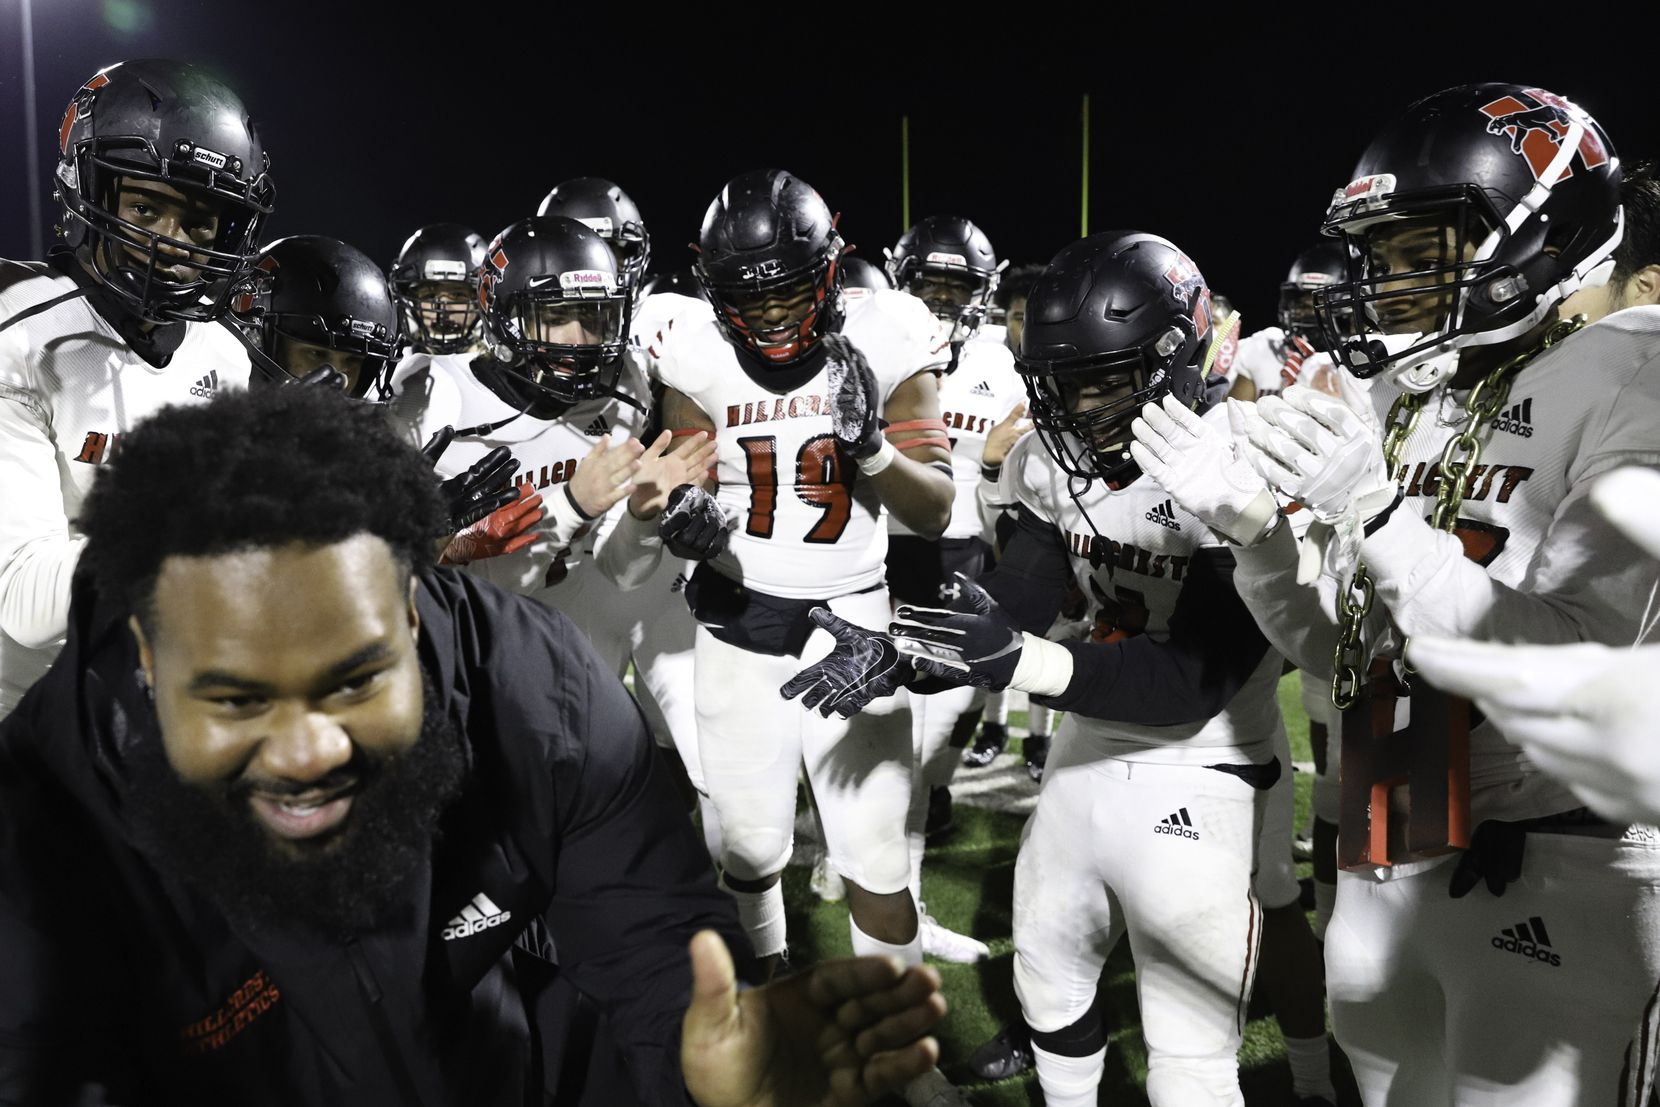 Hillcrest outside linebackers coach Antonio Dudley leads the team in a chant after a win against Spruce at James Ray Henry Stadium in Seagoville, Texas, Friday, December 4, 2020. (Elias Valverde II / Special Contributor)